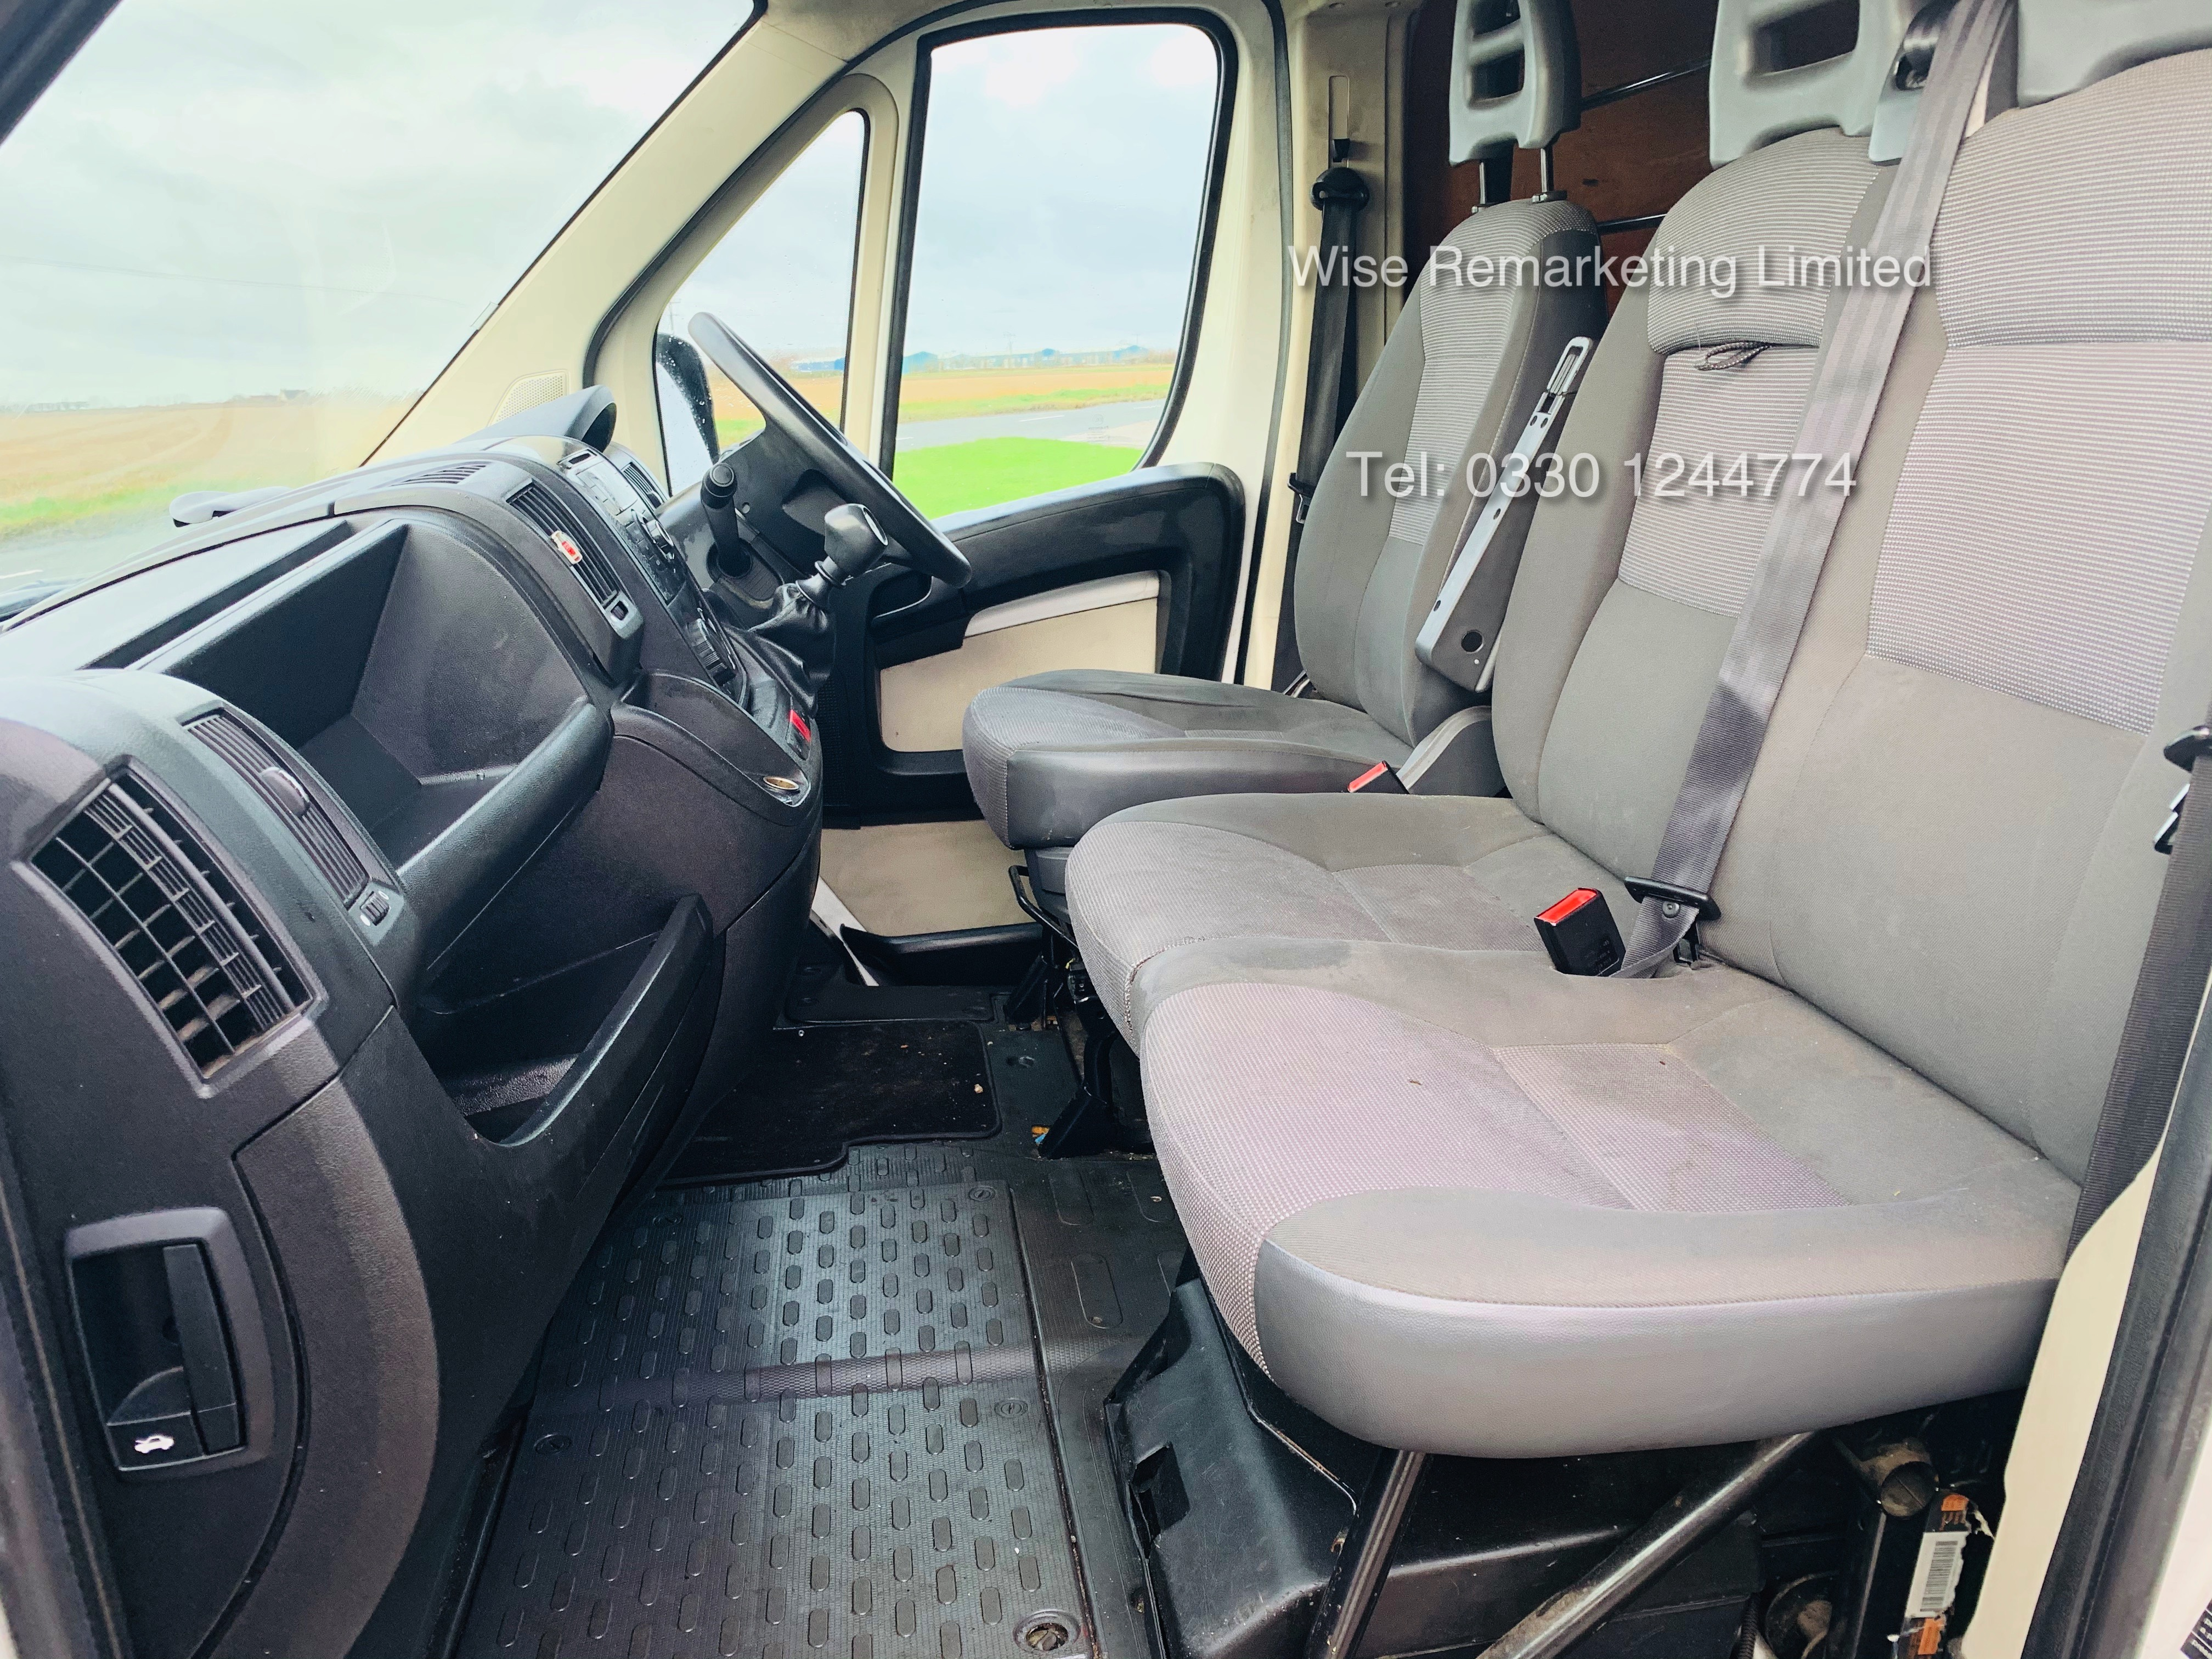 Peugeot Boxer 335 2.2 HDi (L3H2) 2014 Model - 1 Keeper From New - Long Wheel Base - Image 15 of 17